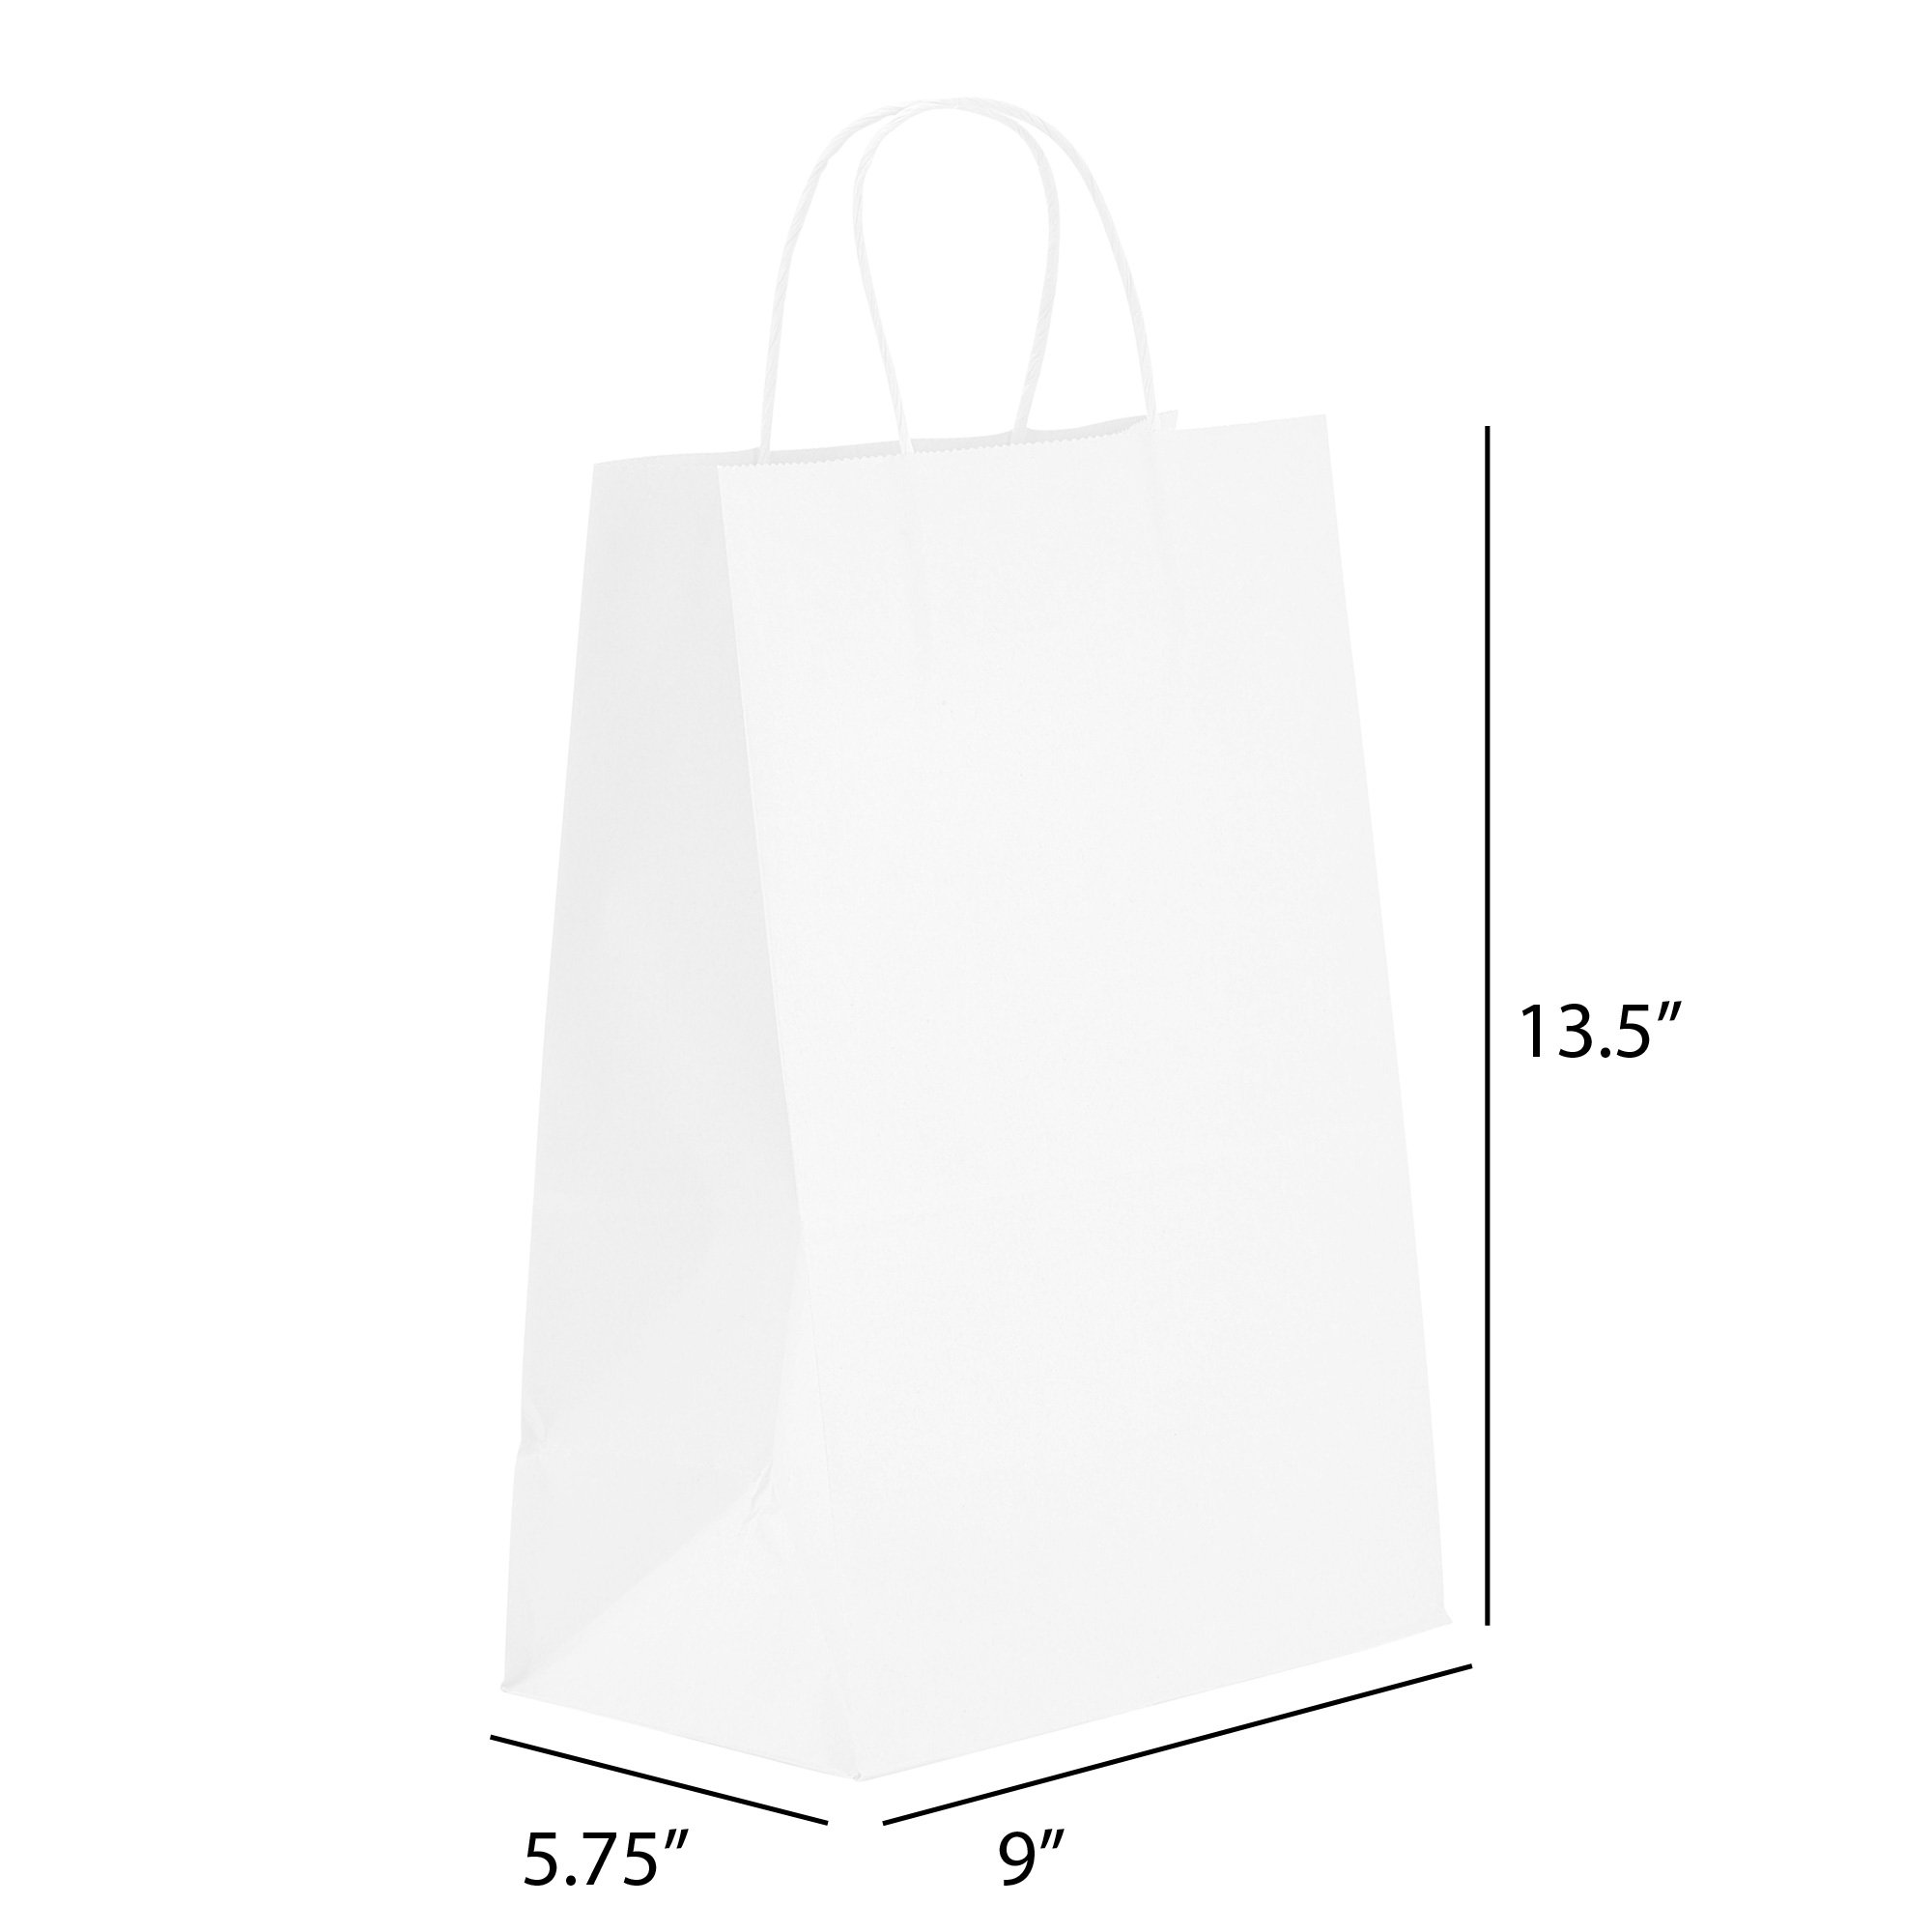 PTP - 9'' x 5.75'' x 13.5'' White Kraft Paper Gift Tote Bags - 250 count   Perfect for Birthdays, Weddings, Holidays and All Occasions   White or Natural Colors   Multiple Sizes